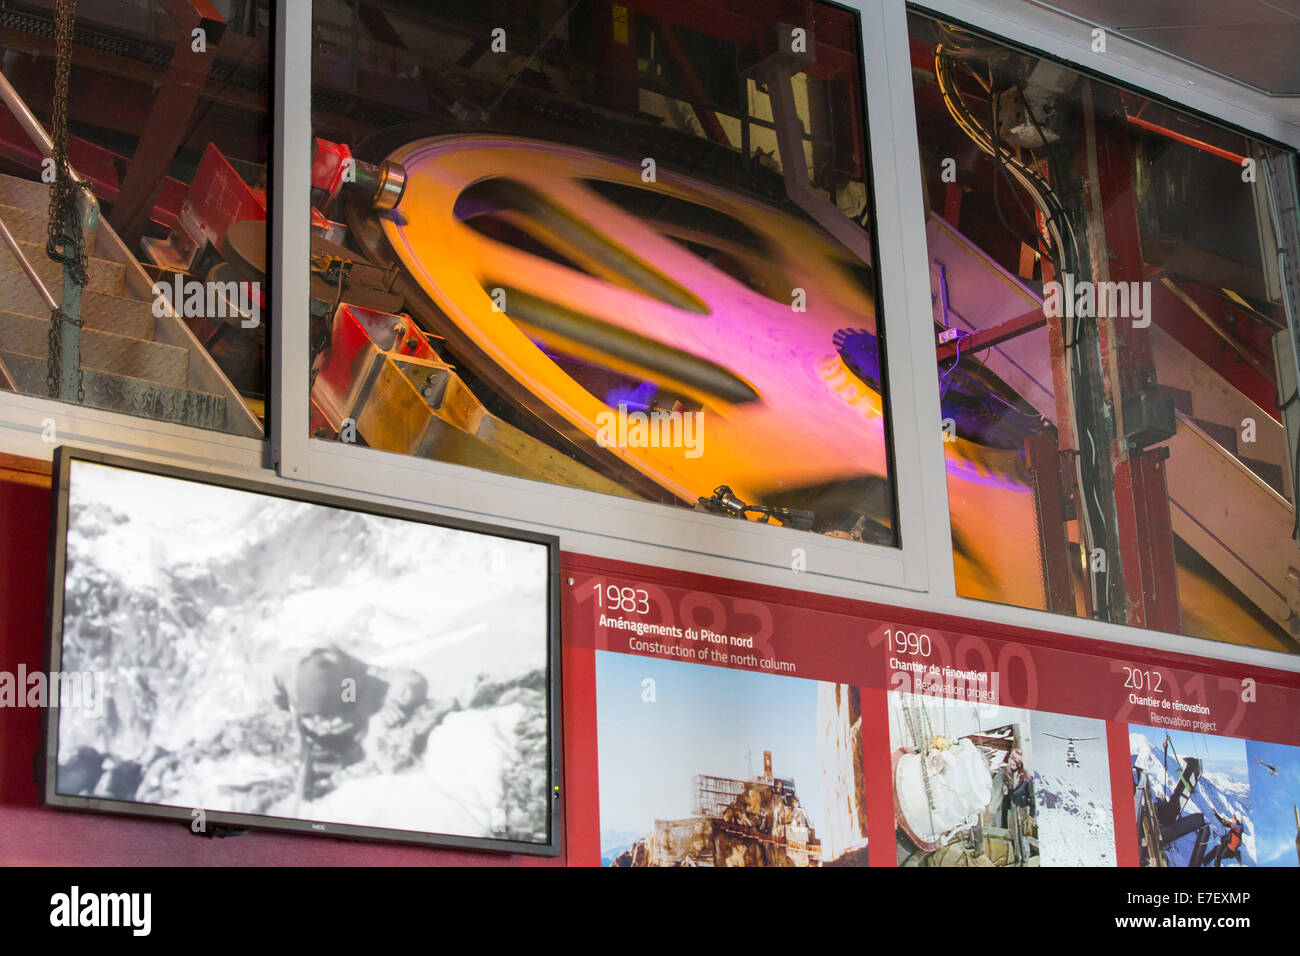 The cable car pulley wheel on the Aiguille du Midi above Chamonix, France. - Stock Image